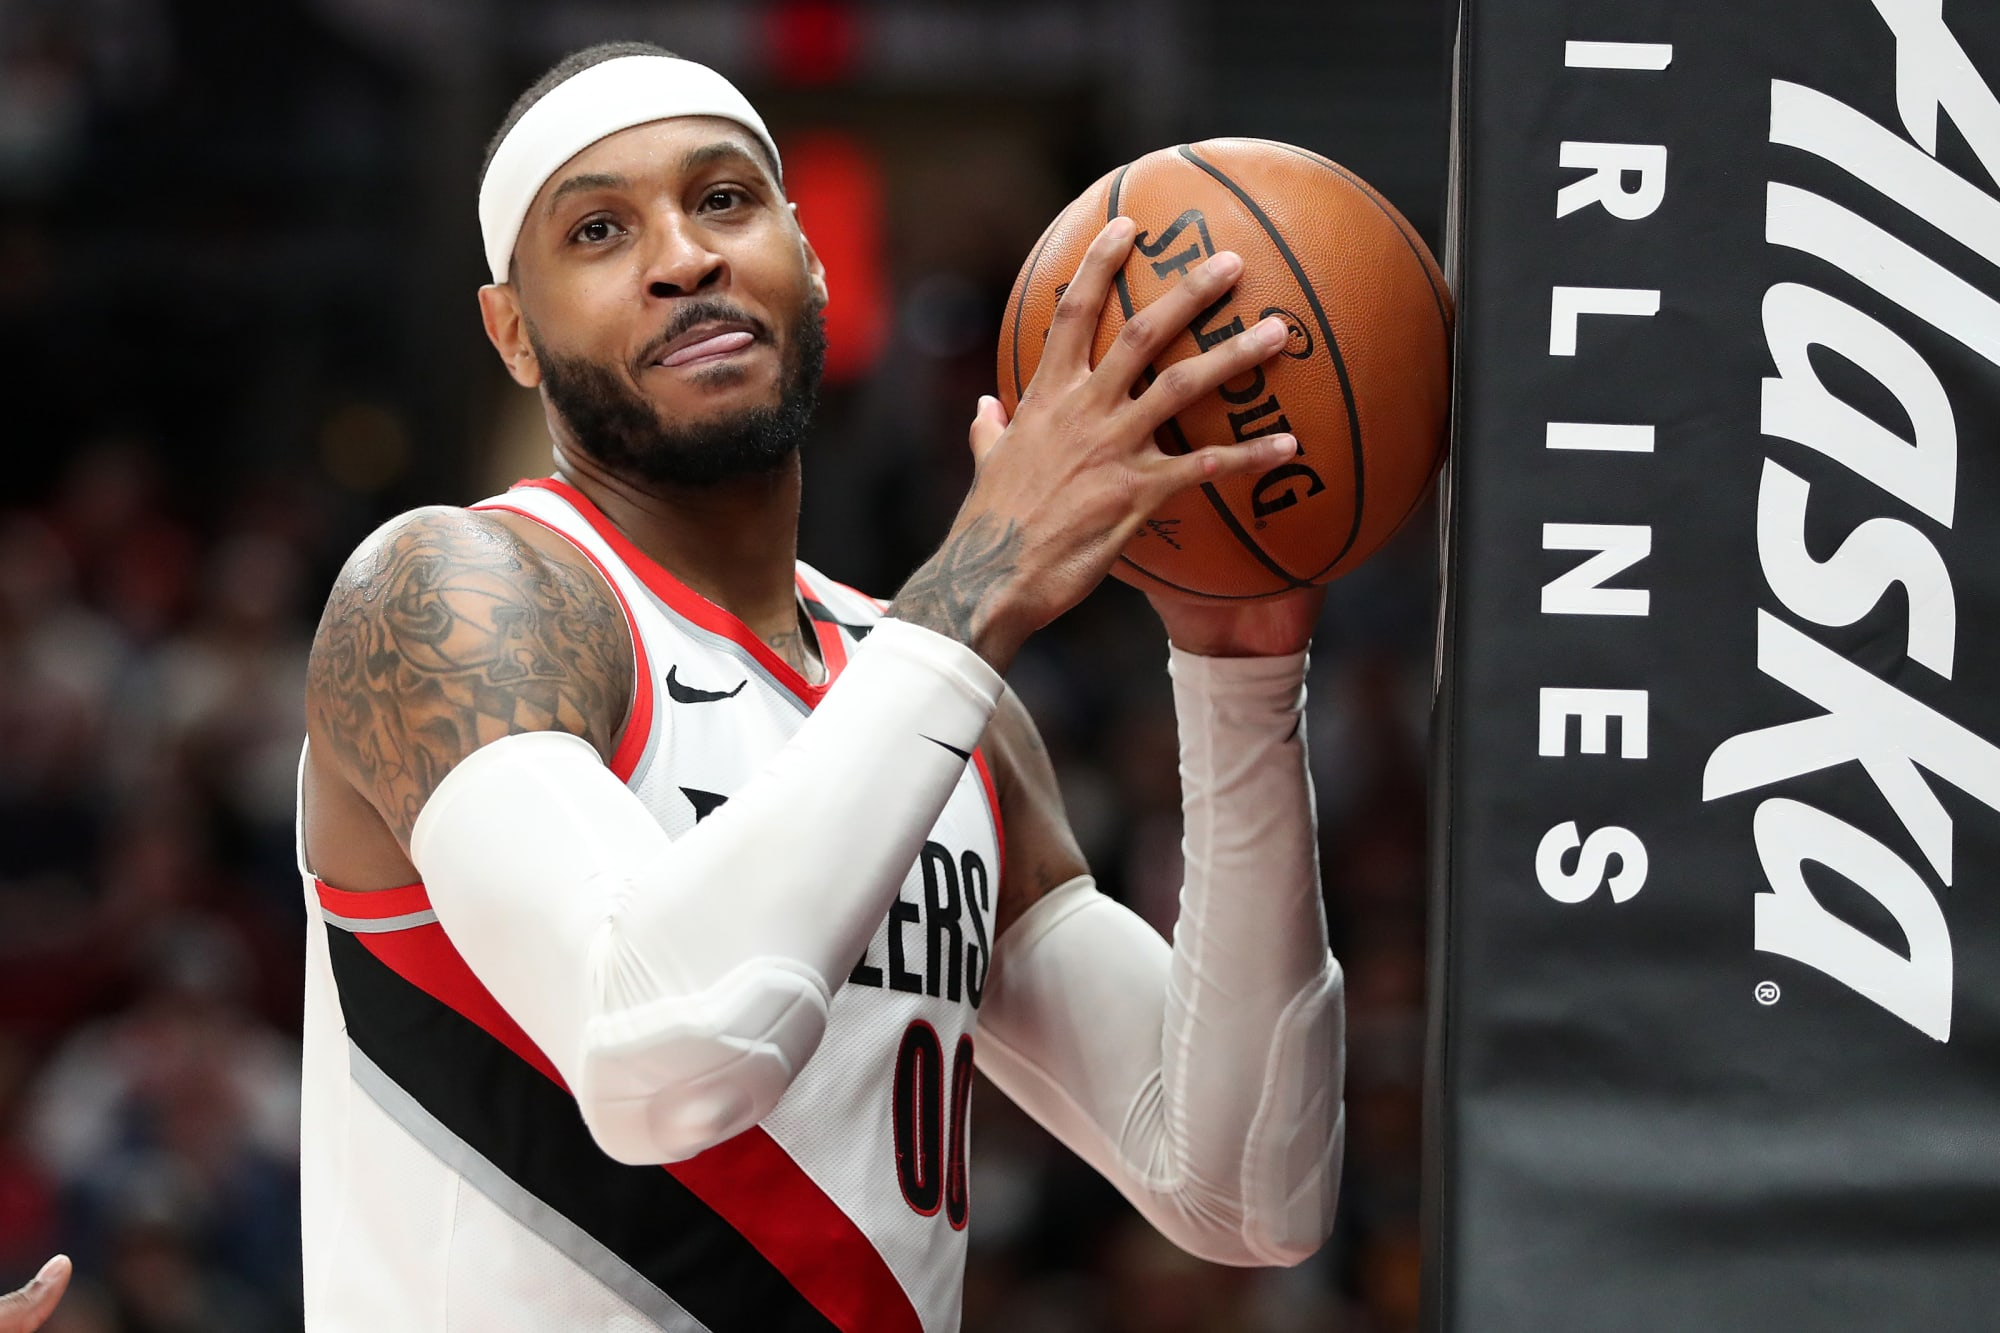 Carmelo Anthony looking ripped in photo at Portland Trail Blazers training